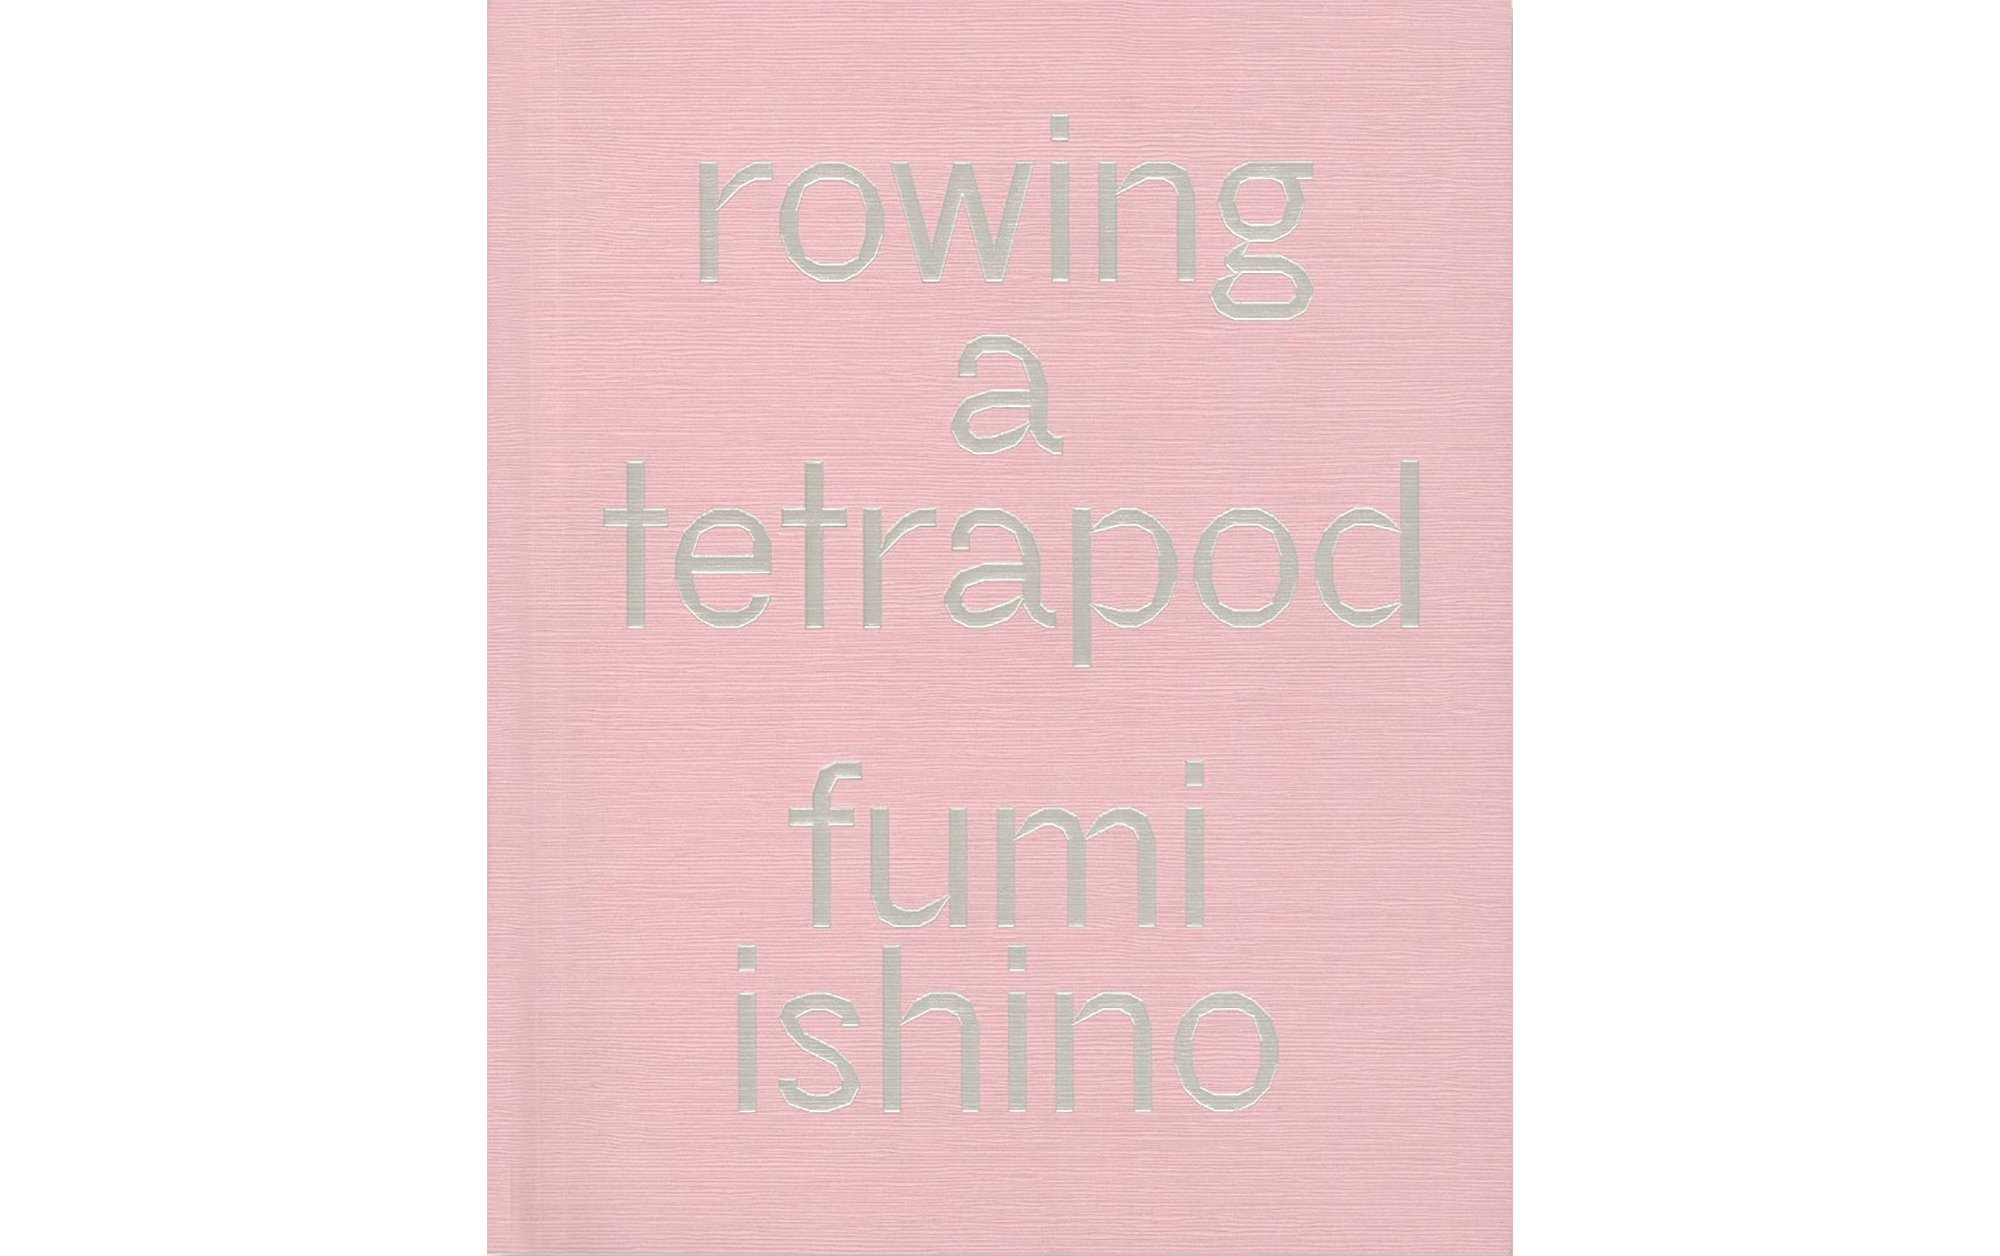 ROWING A TETRAPOD